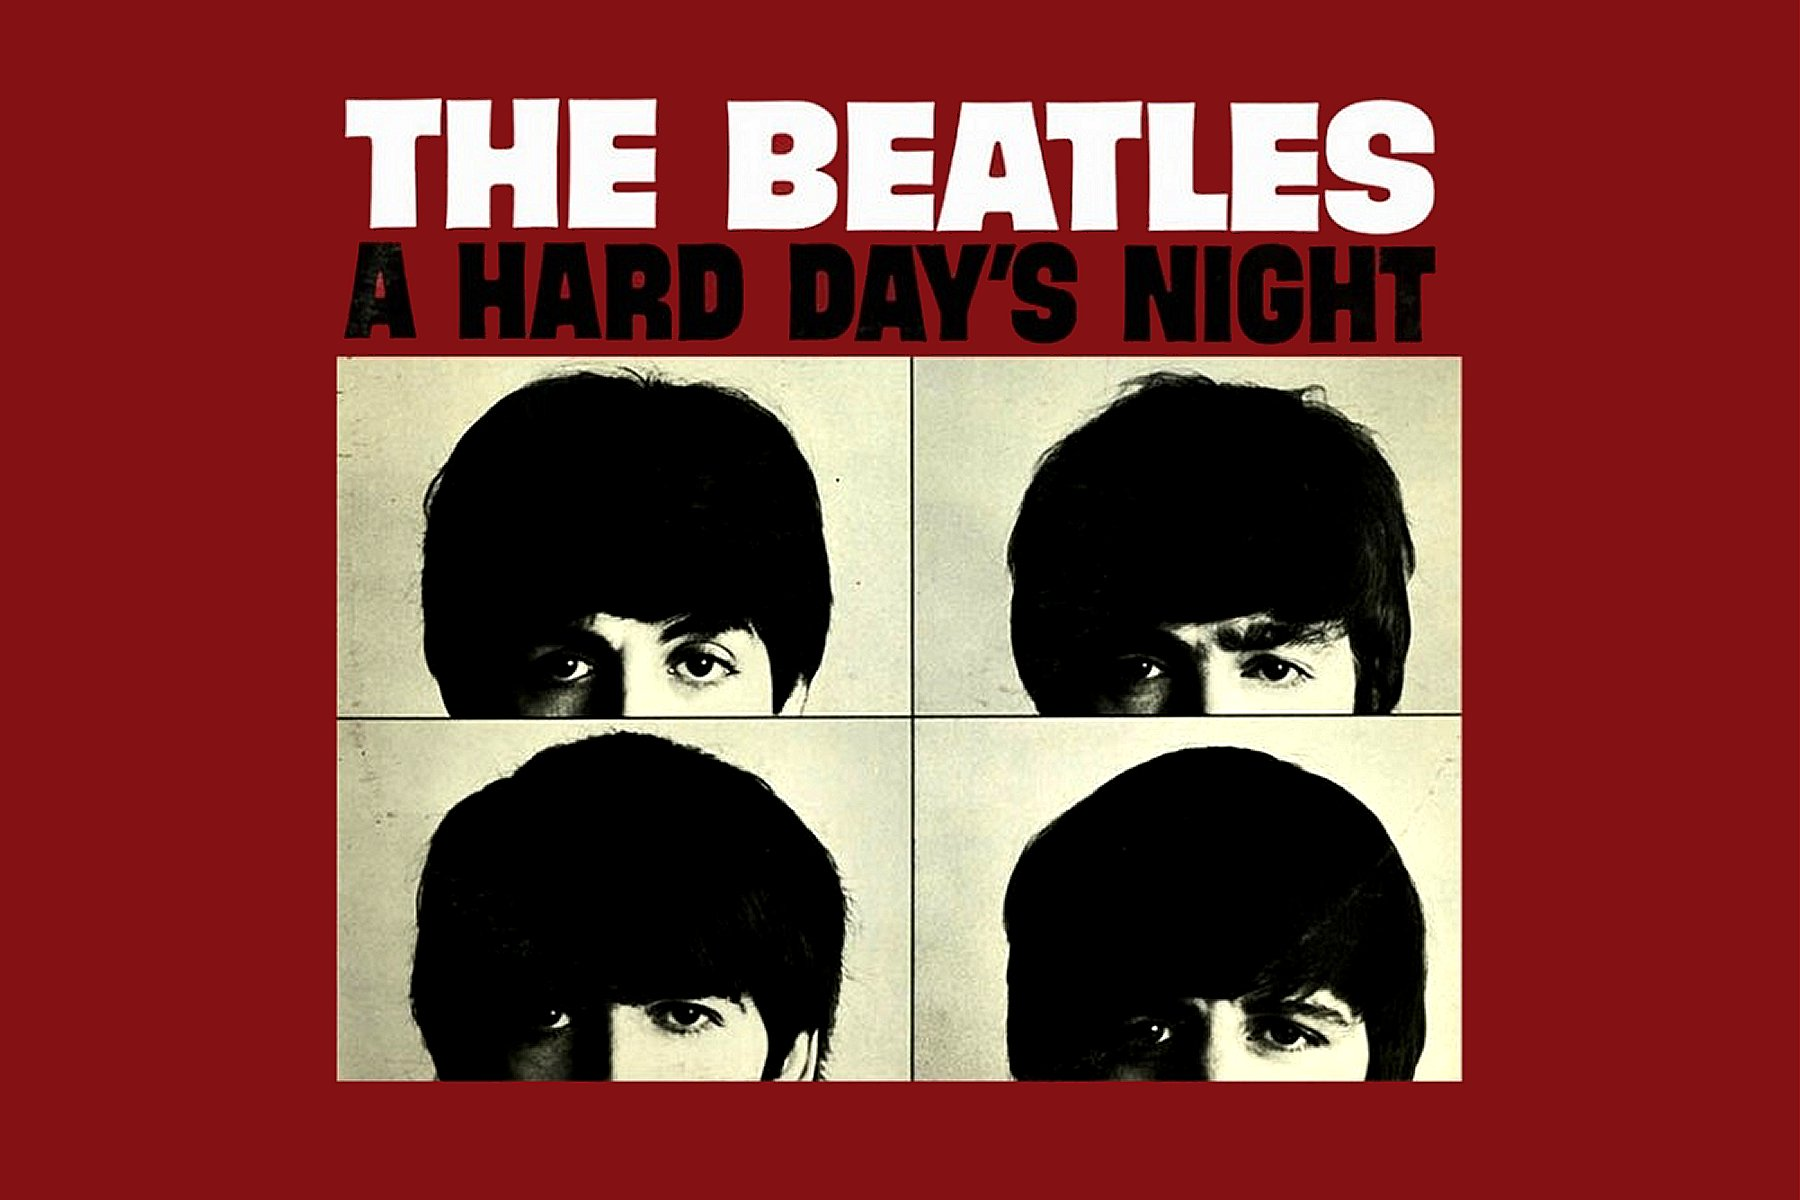 A Hard Days Night Inspired Desktop Wallpaper